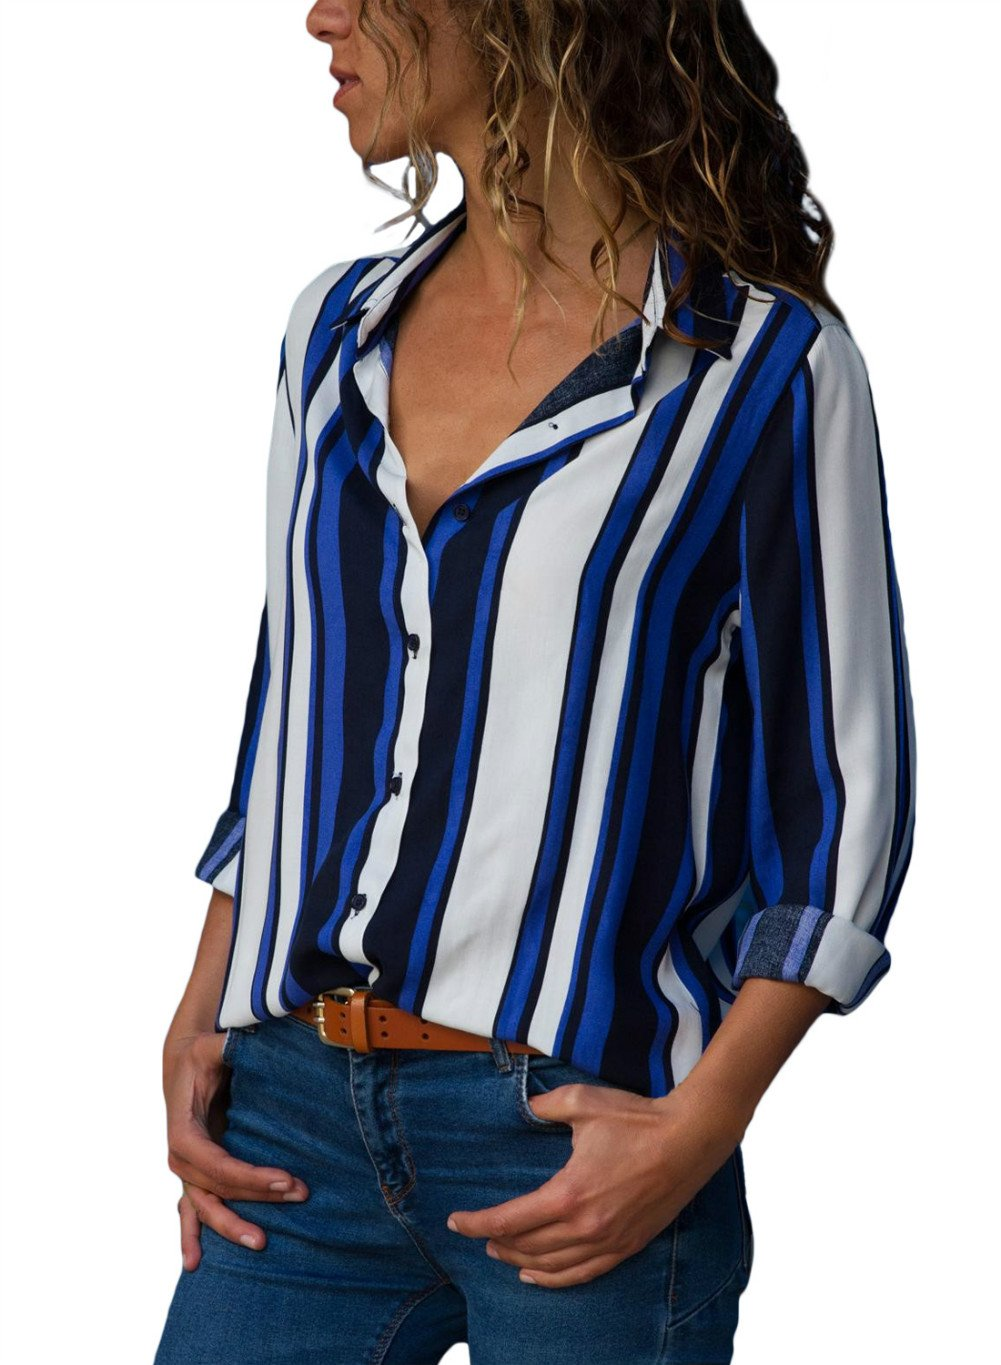 HUUSA Shirts for Women, Fashion Shirts Elegant Loose Long Sleeve Sexy V Neck Button up Color Block Stripes Tops L Blue